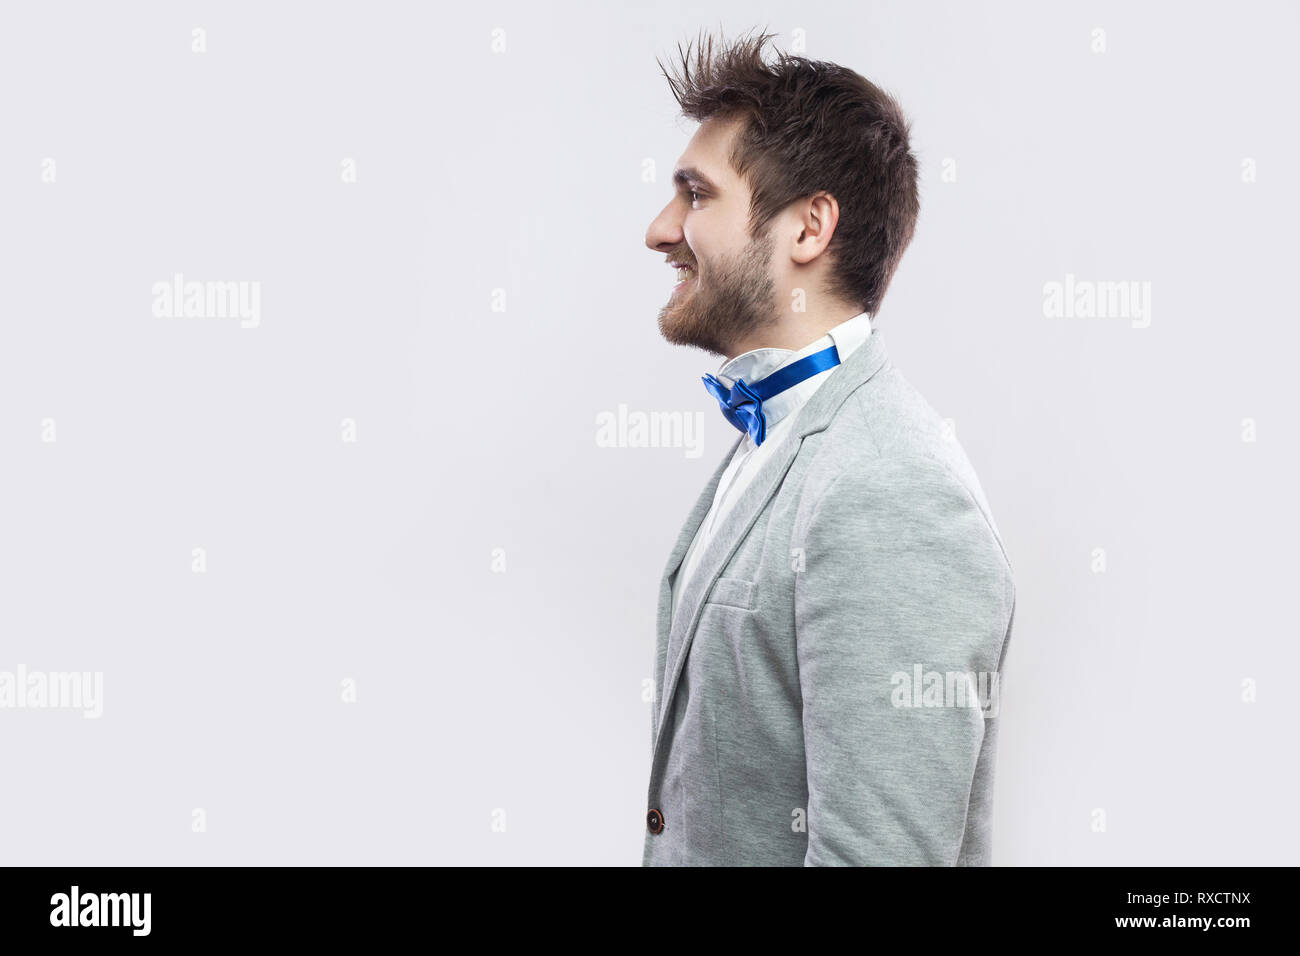 f7c22175995f Profile side view portrait of happy satisfied handsome bearded man in casual  grey suit and blue